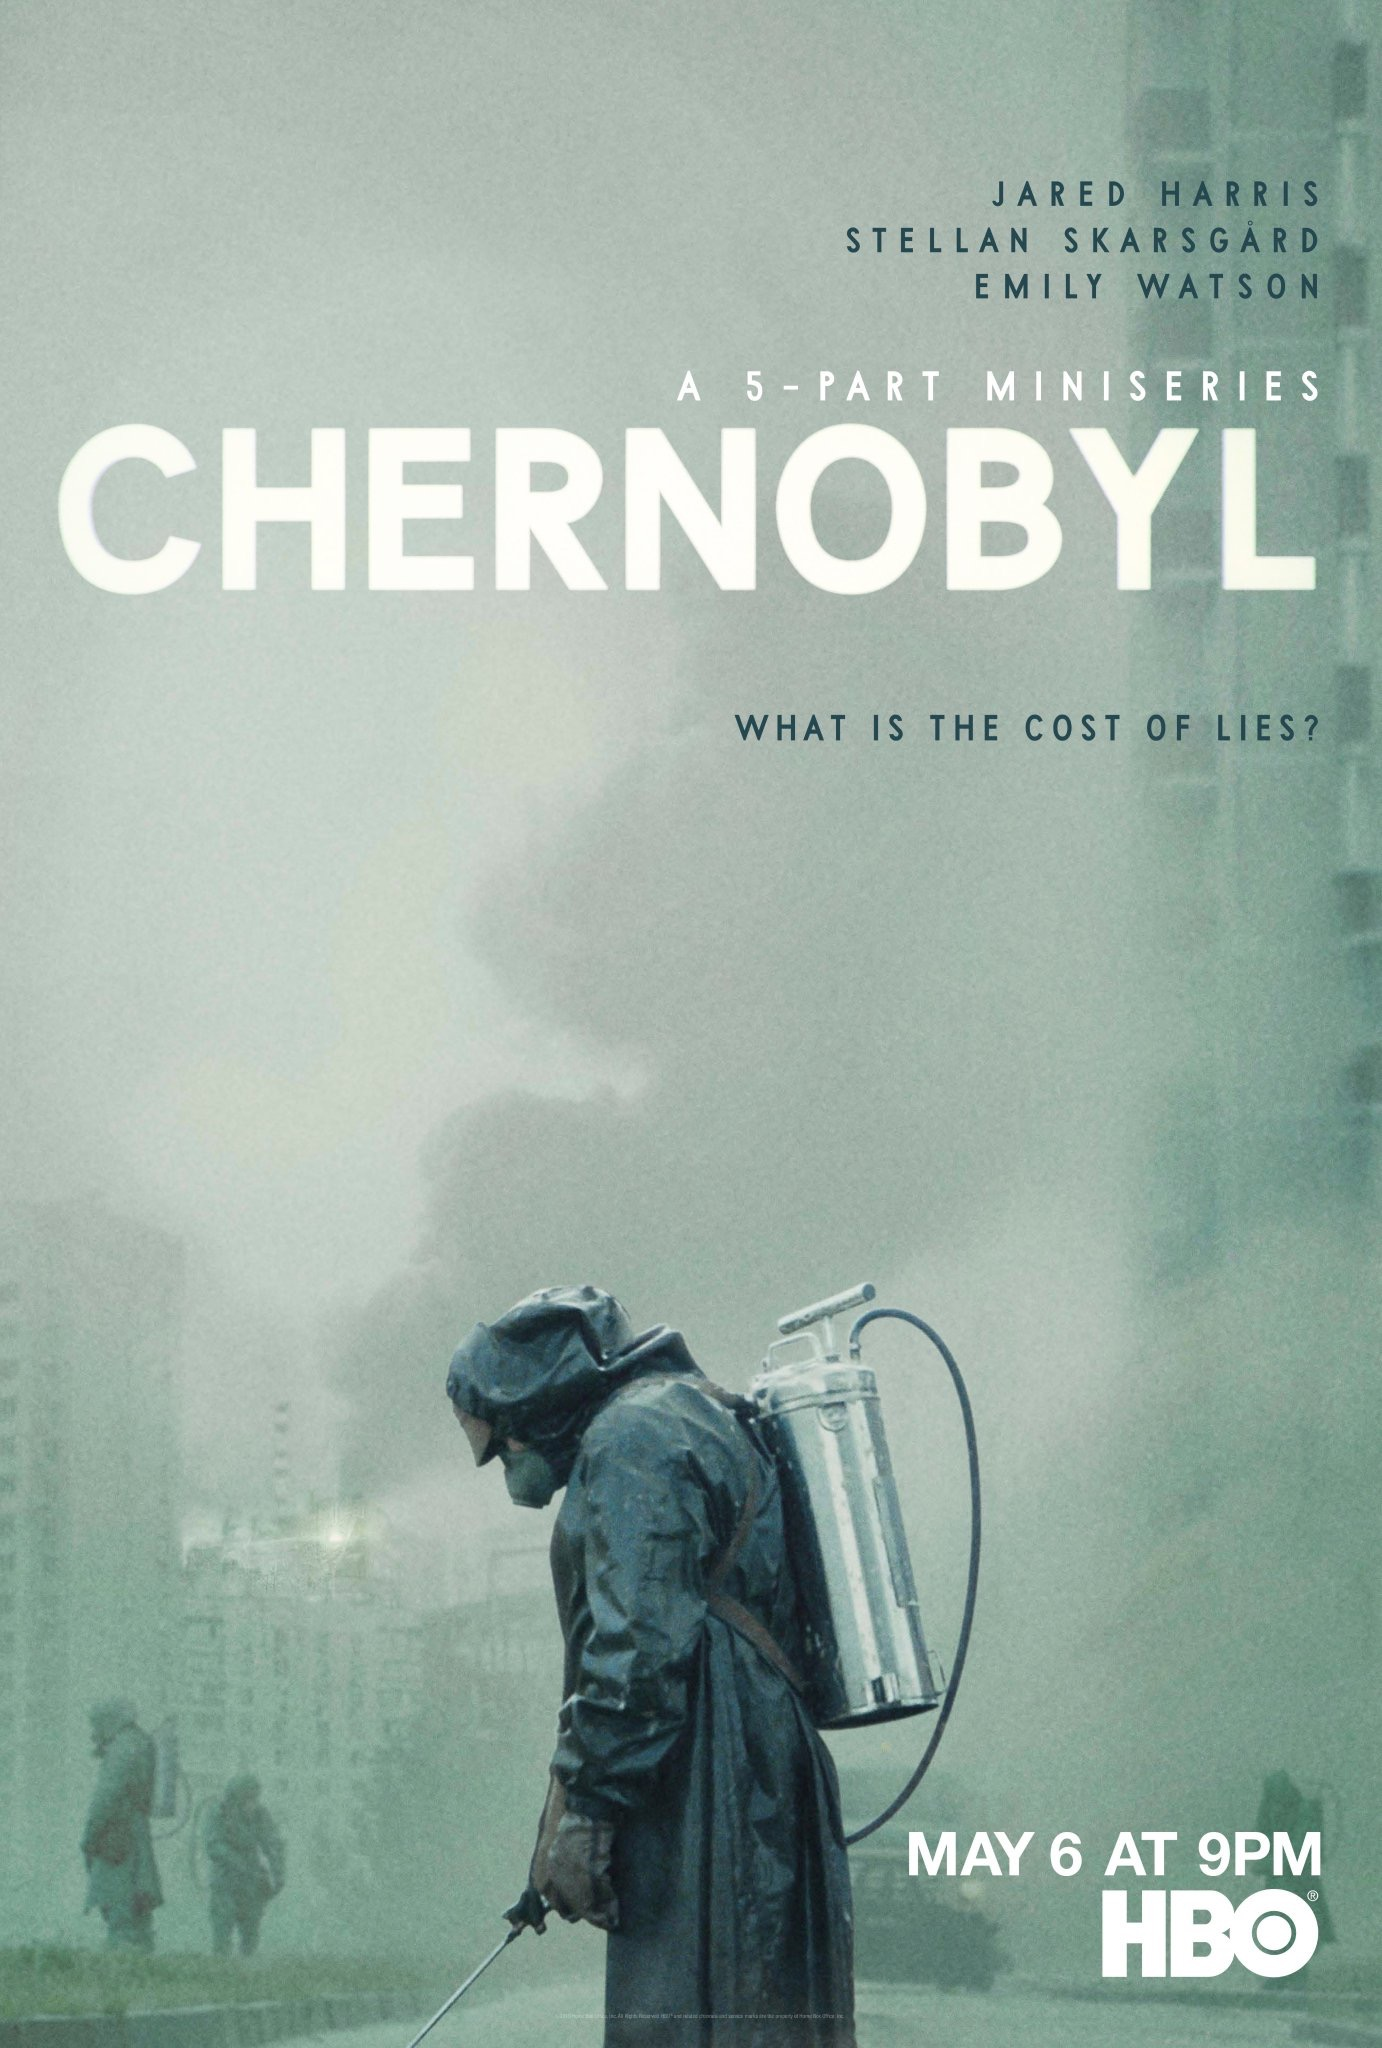 Chernobyl 2019 (TV Series)-All Seasons-BRRip-1080p/720p/480p-Direct Links